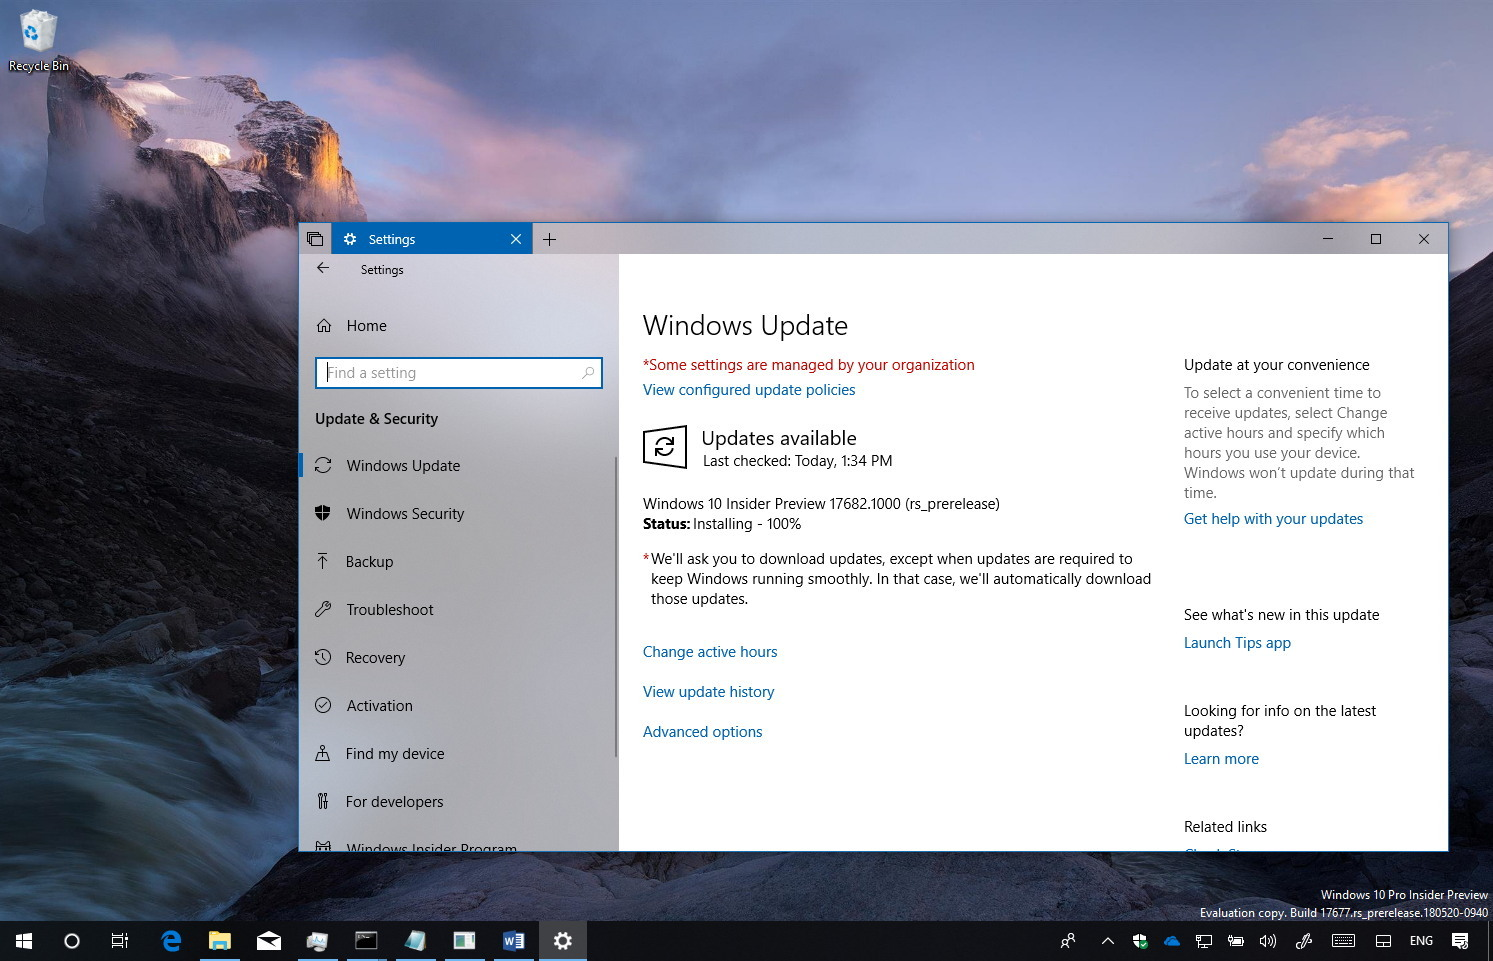 Windows 10 build 17682